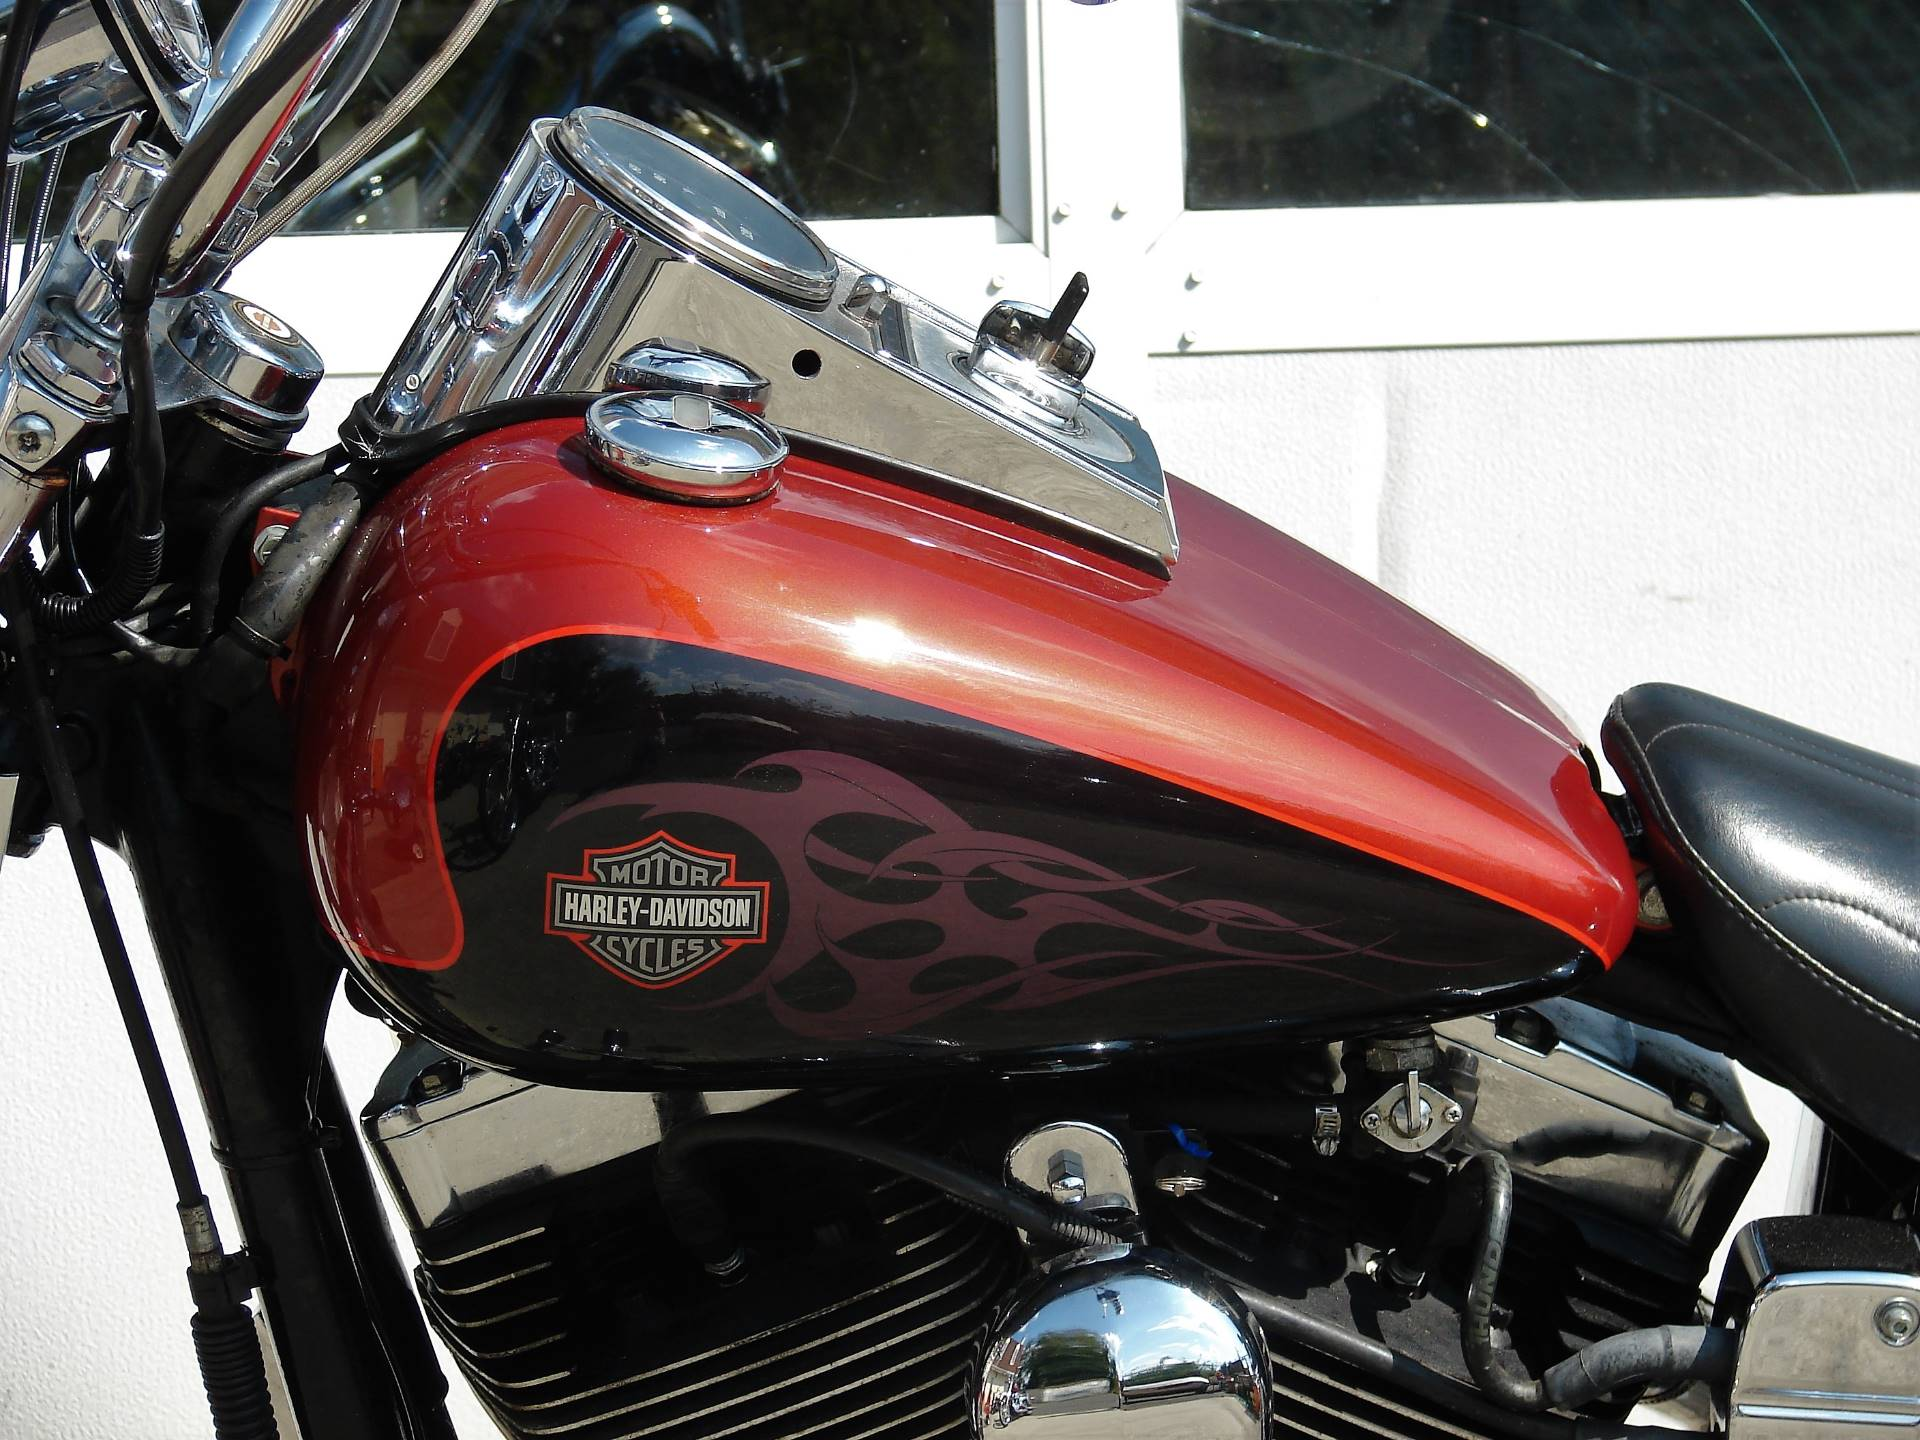 2000 Harley-Davidson FXDWG Dyna Wide Glide in Williamstown, New Jersey - Photo 9